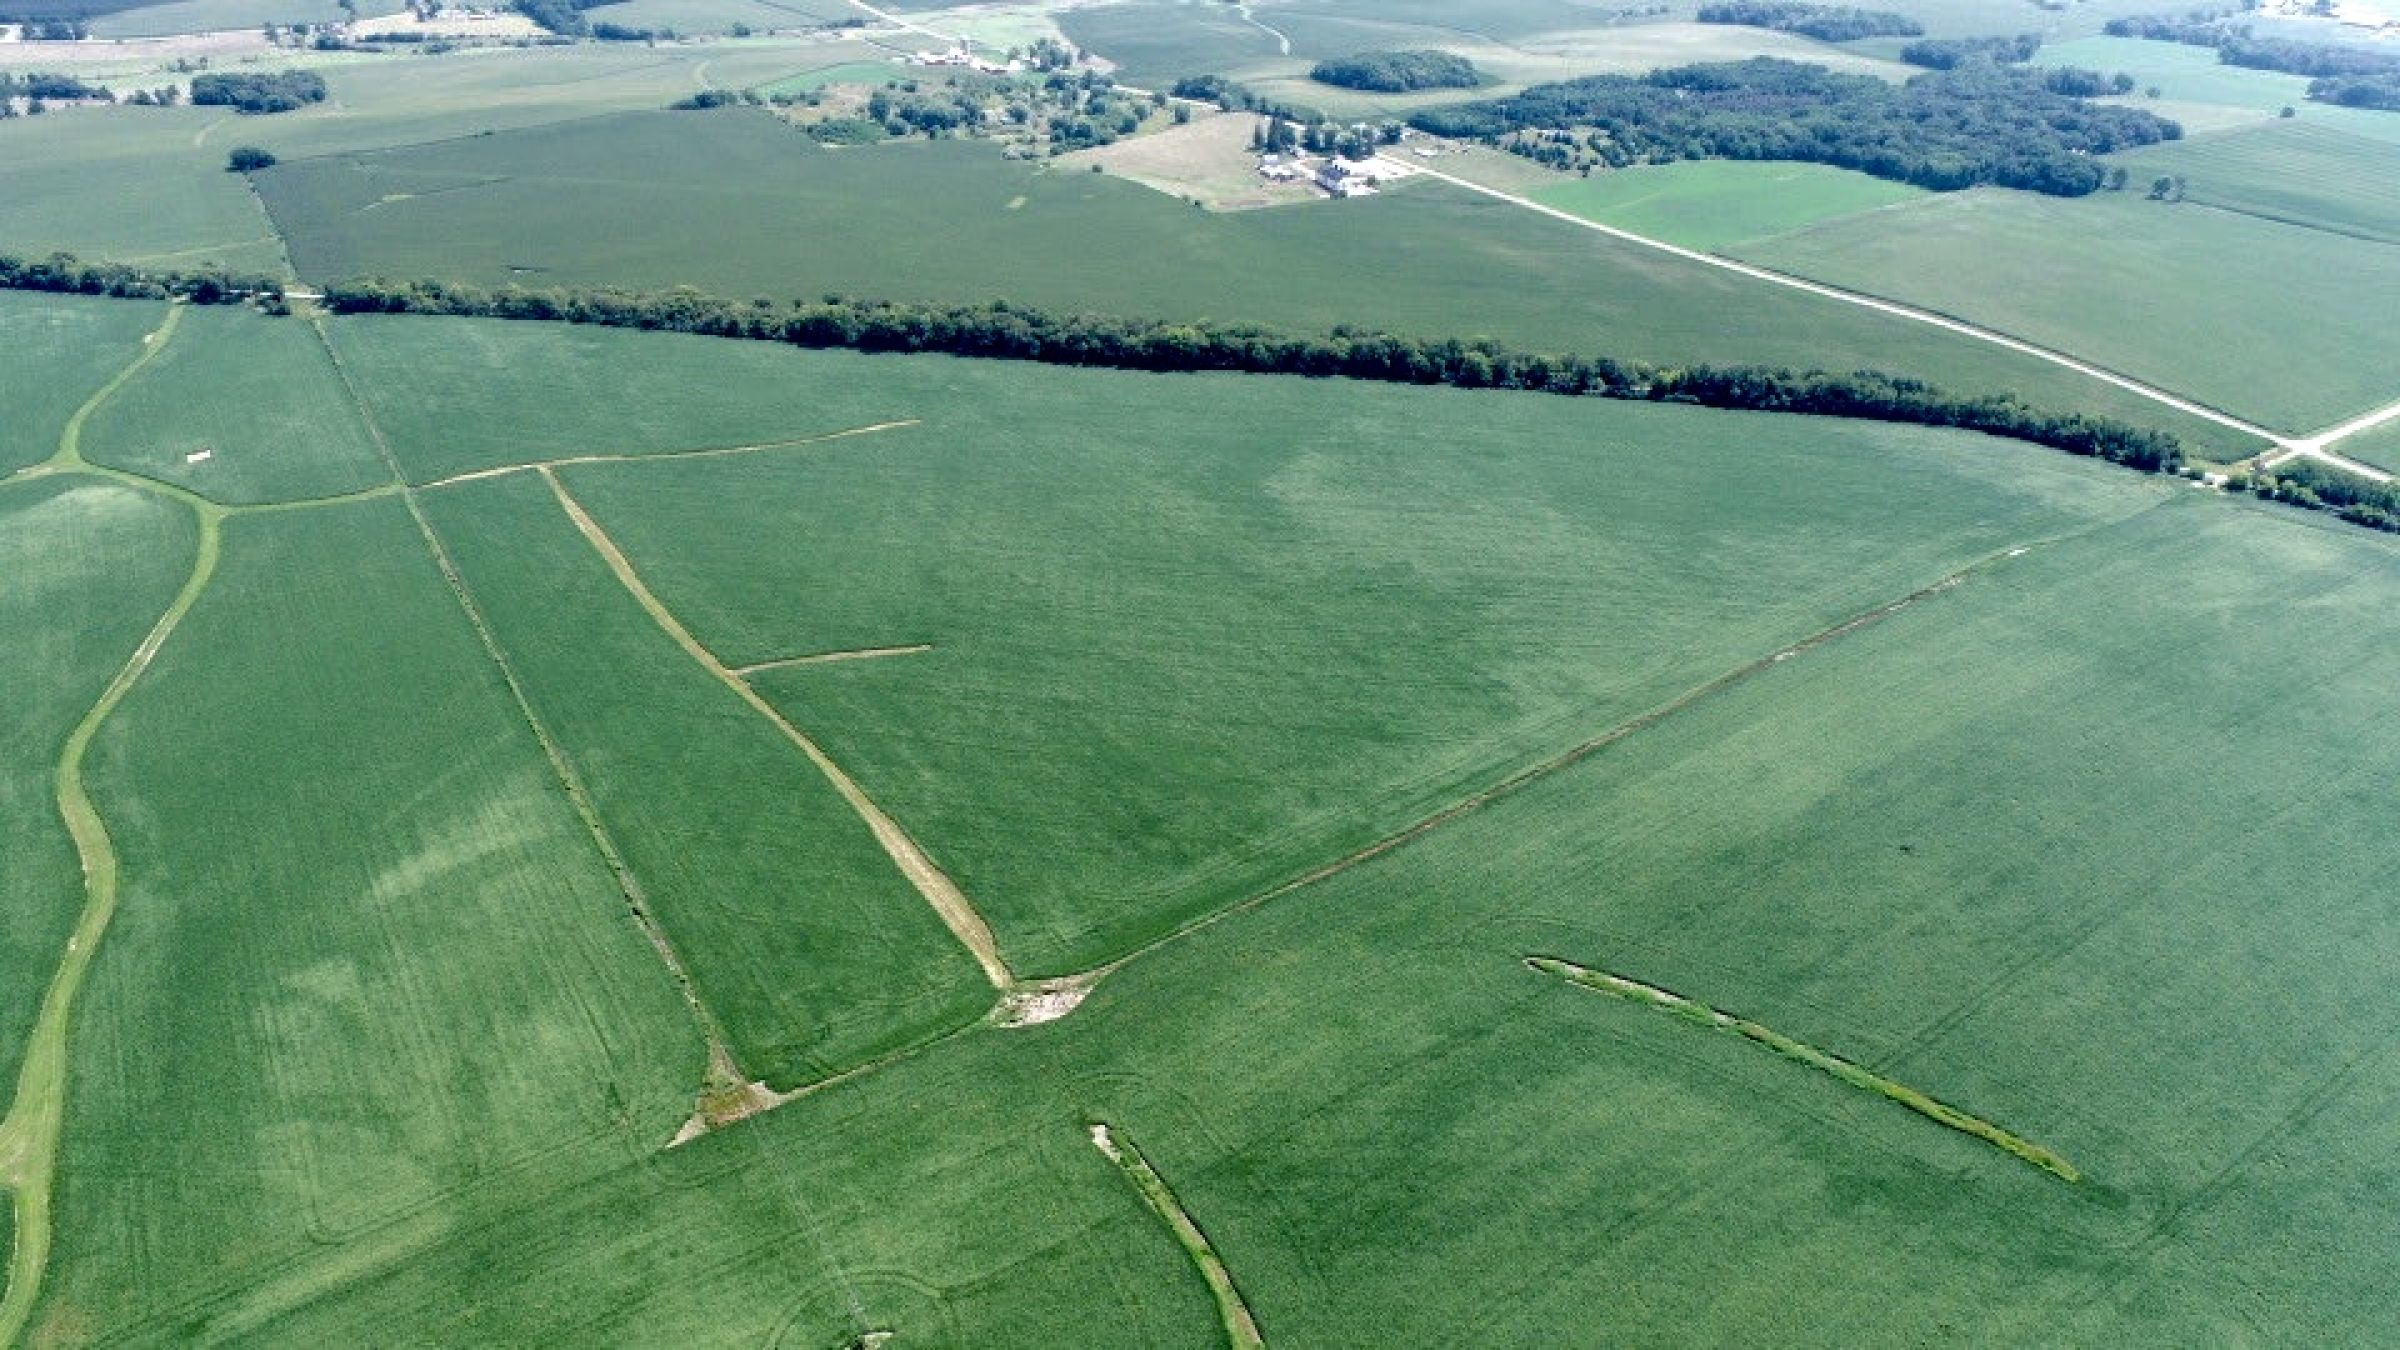 land-green-county-wisconsin-80-acres-listing-number-15692-9-2021-08-19-205614.jpg